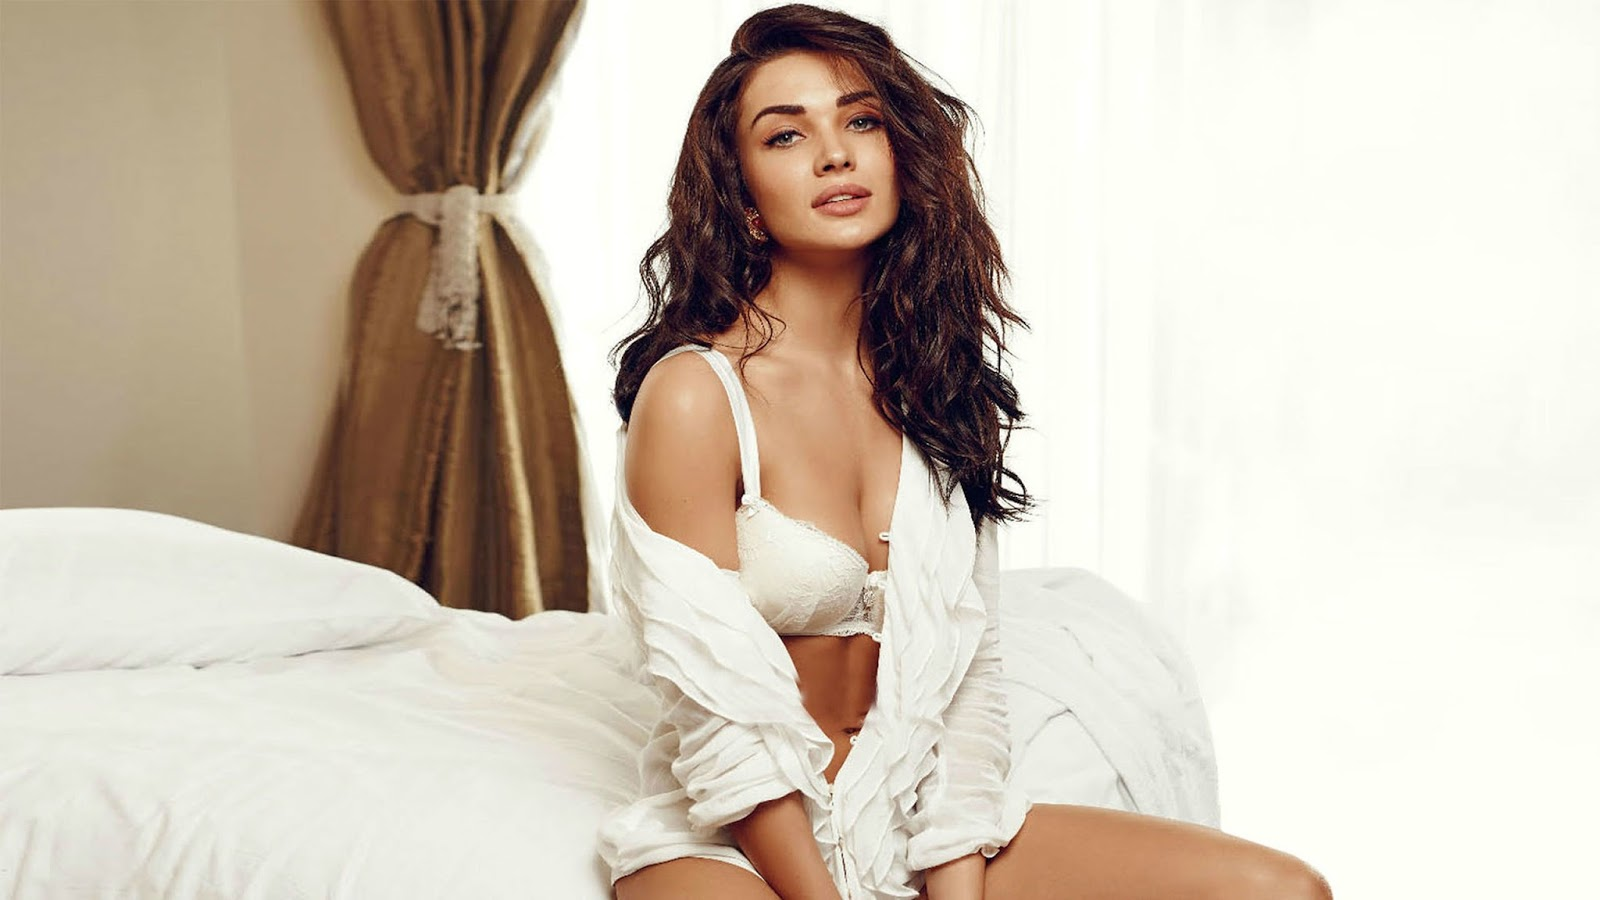 Amy Jackson Sex Com latest beautiful wallpaper images: amy jackson sexy photo